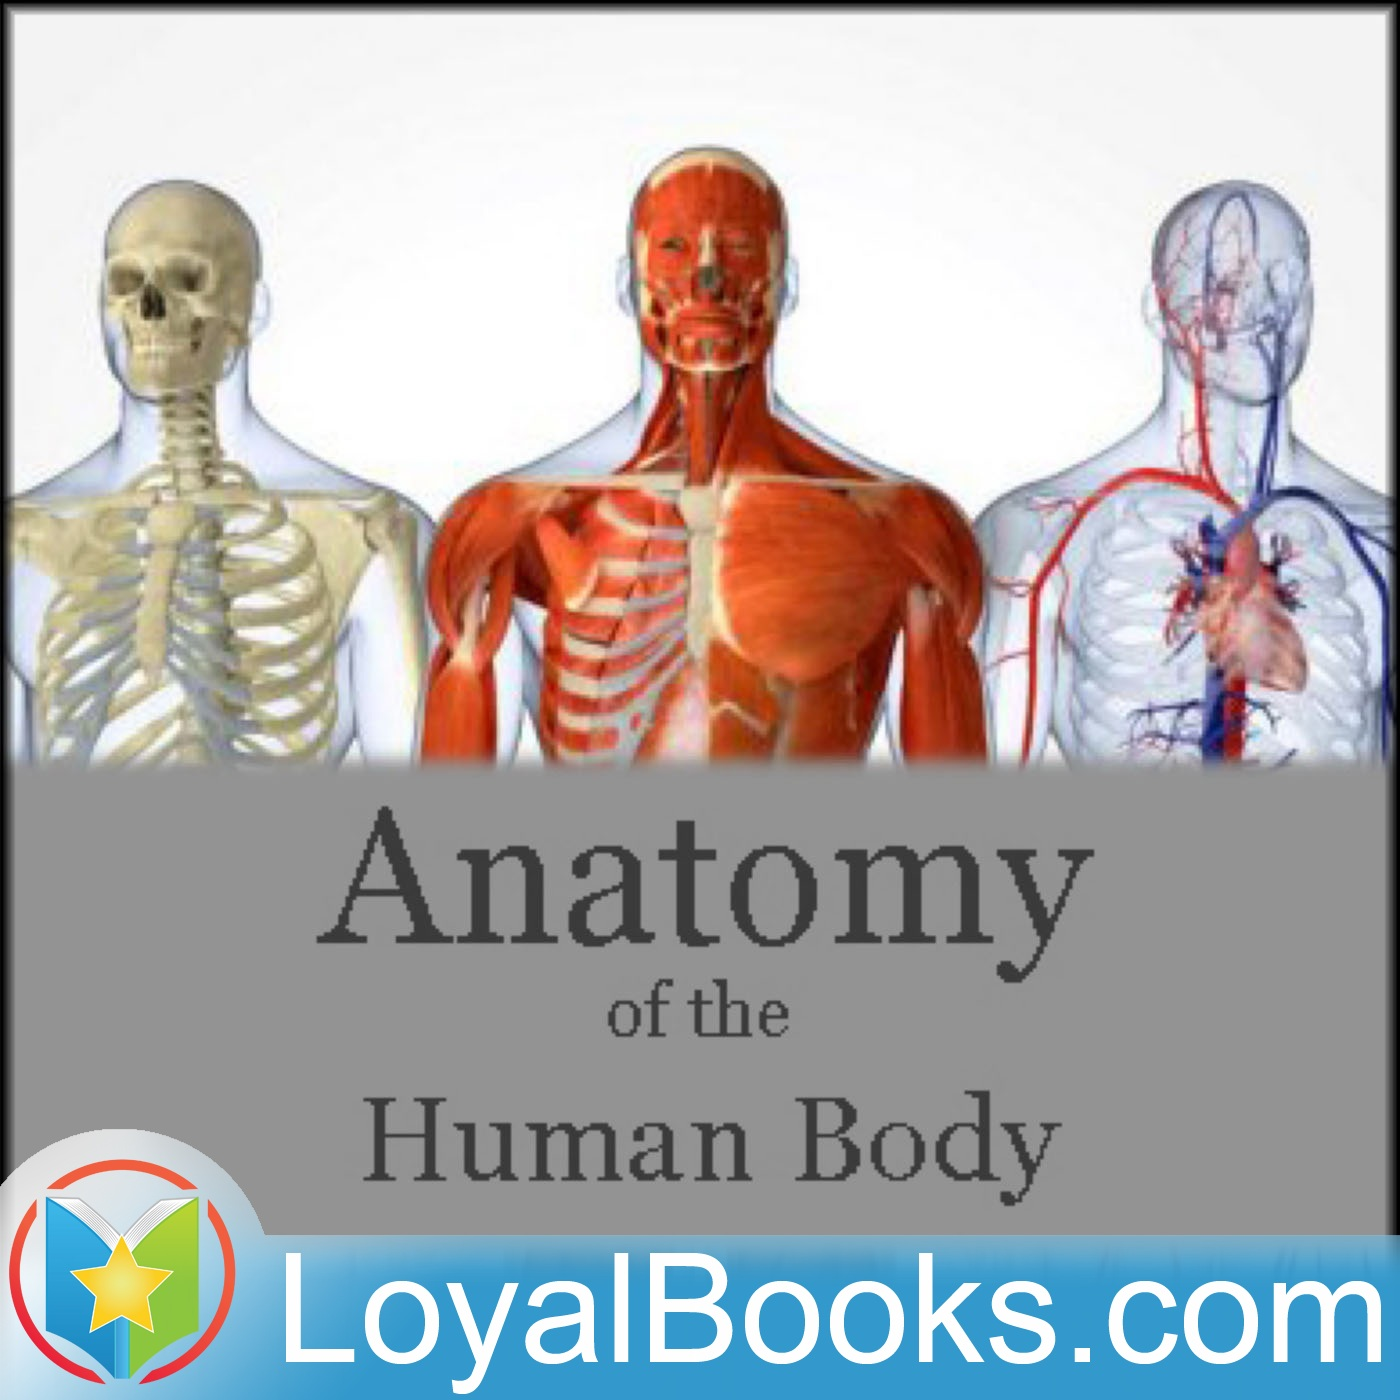 The anatomy of a human body